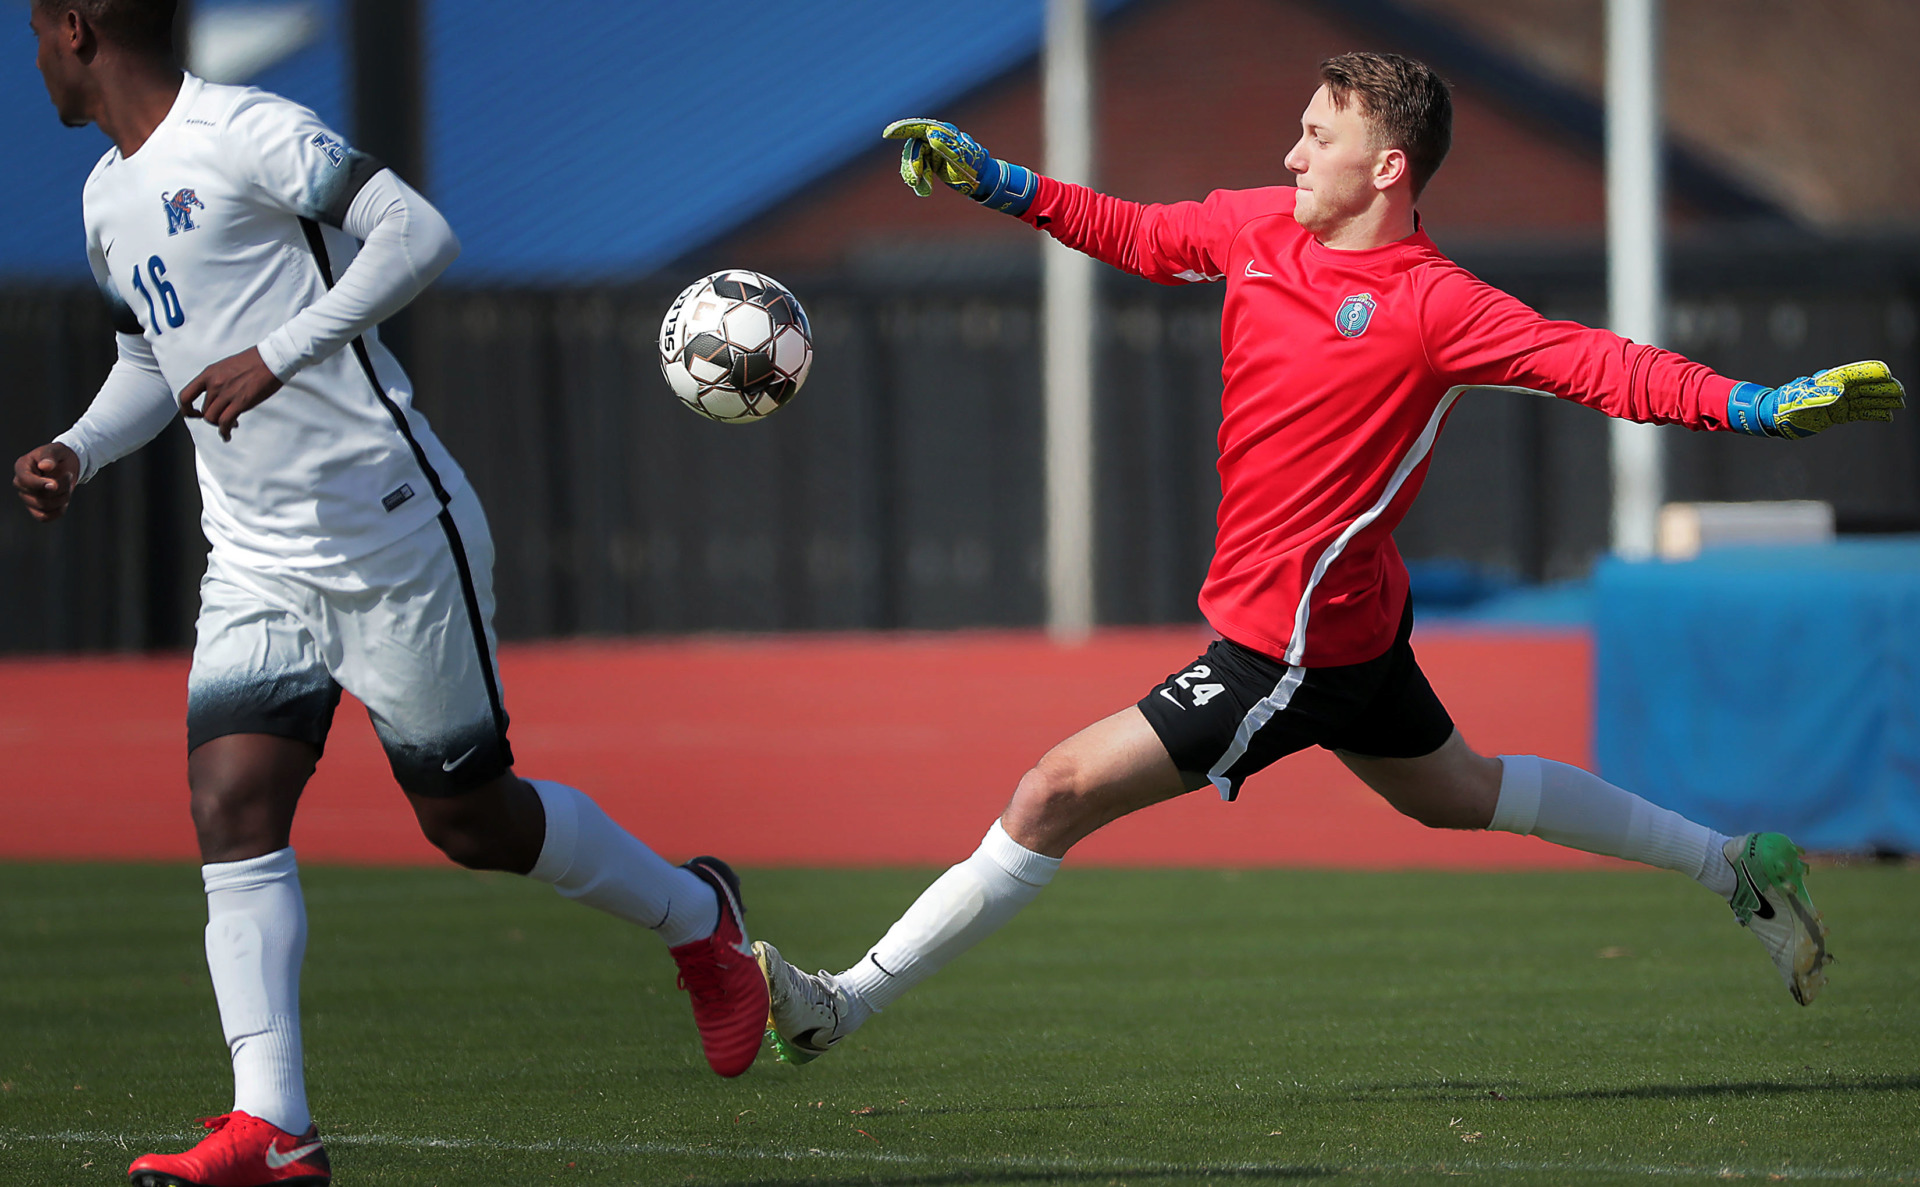 <strong>Memphis 901 FC Goalie Scott Levene clears the ball under pressure by University of Memphis midfielder Atakelti Gebregzabher during an exhibition game against the Tigers soccer team at the U of M south campus on Feb. 9, 2019.</strong> (Jim Weber/Daily Memphian)